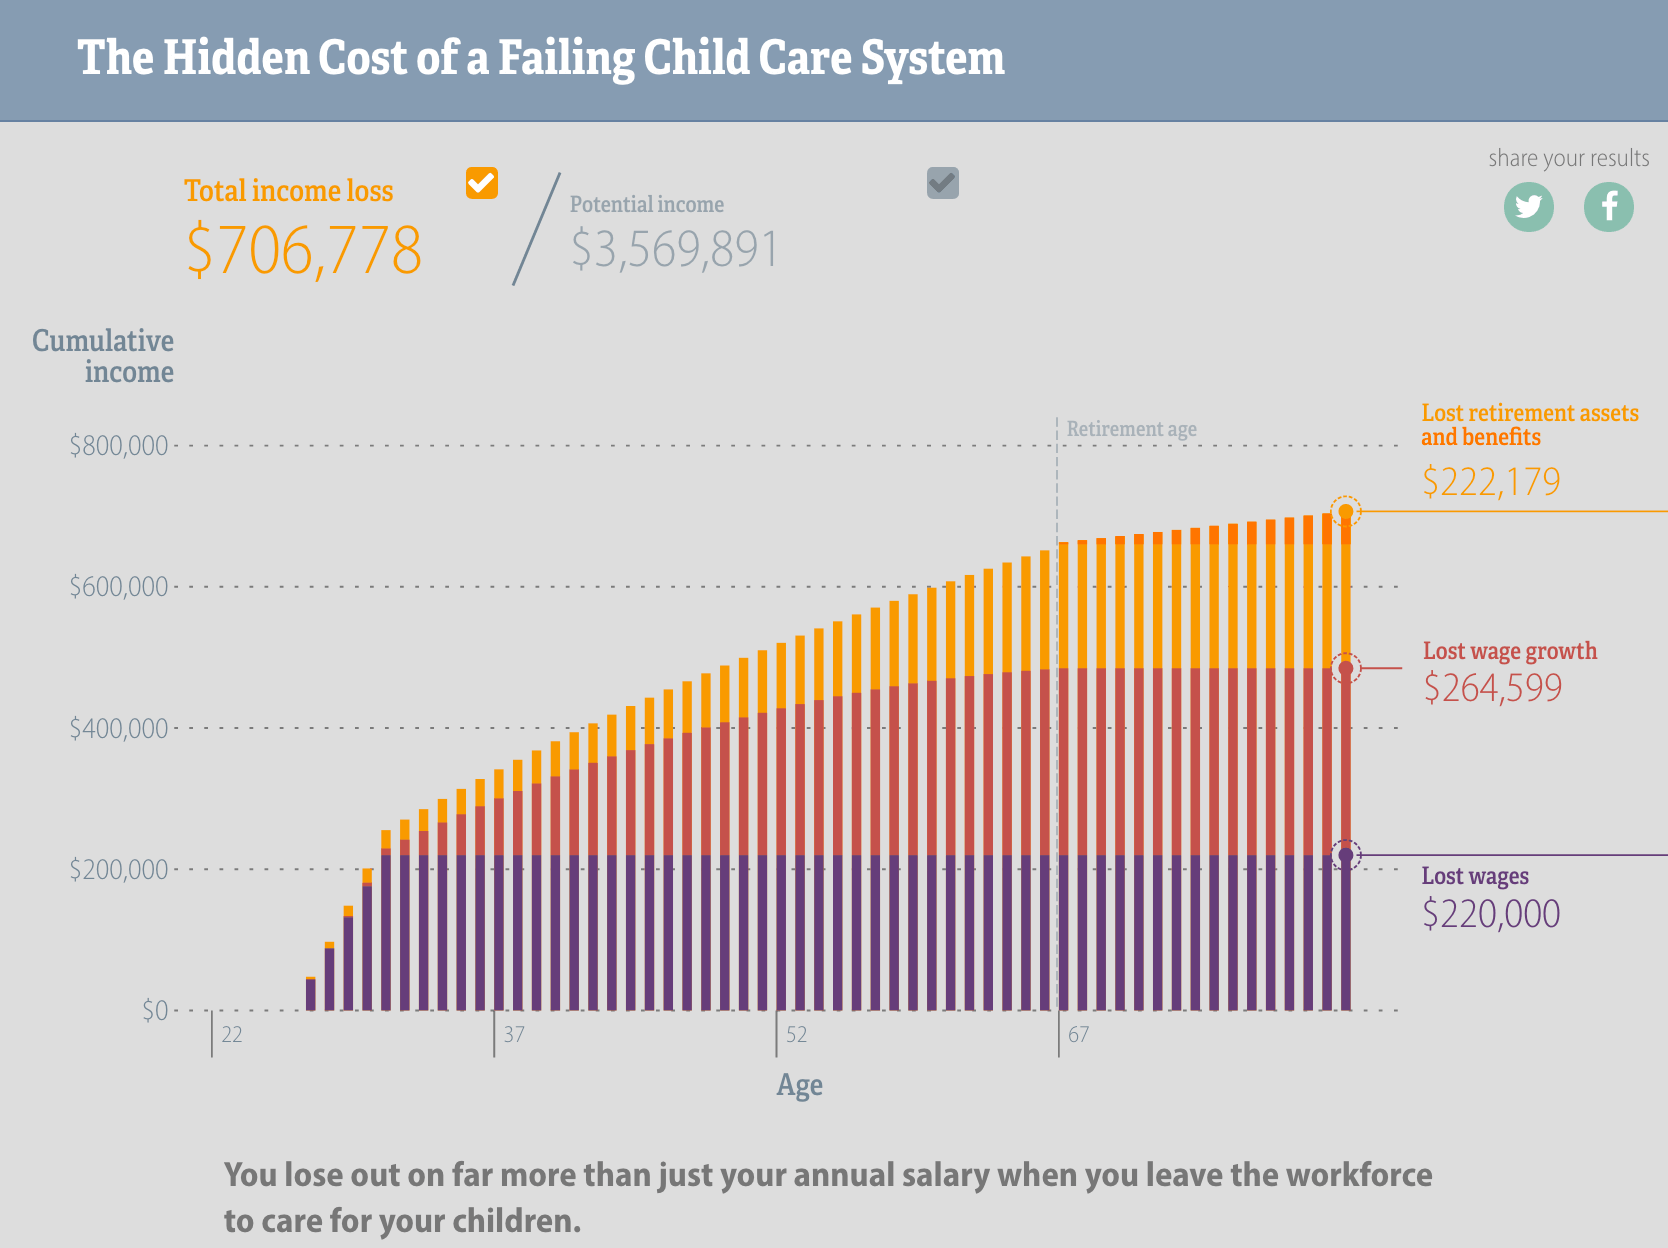 The Hidden Cost of a Failing Child Care System